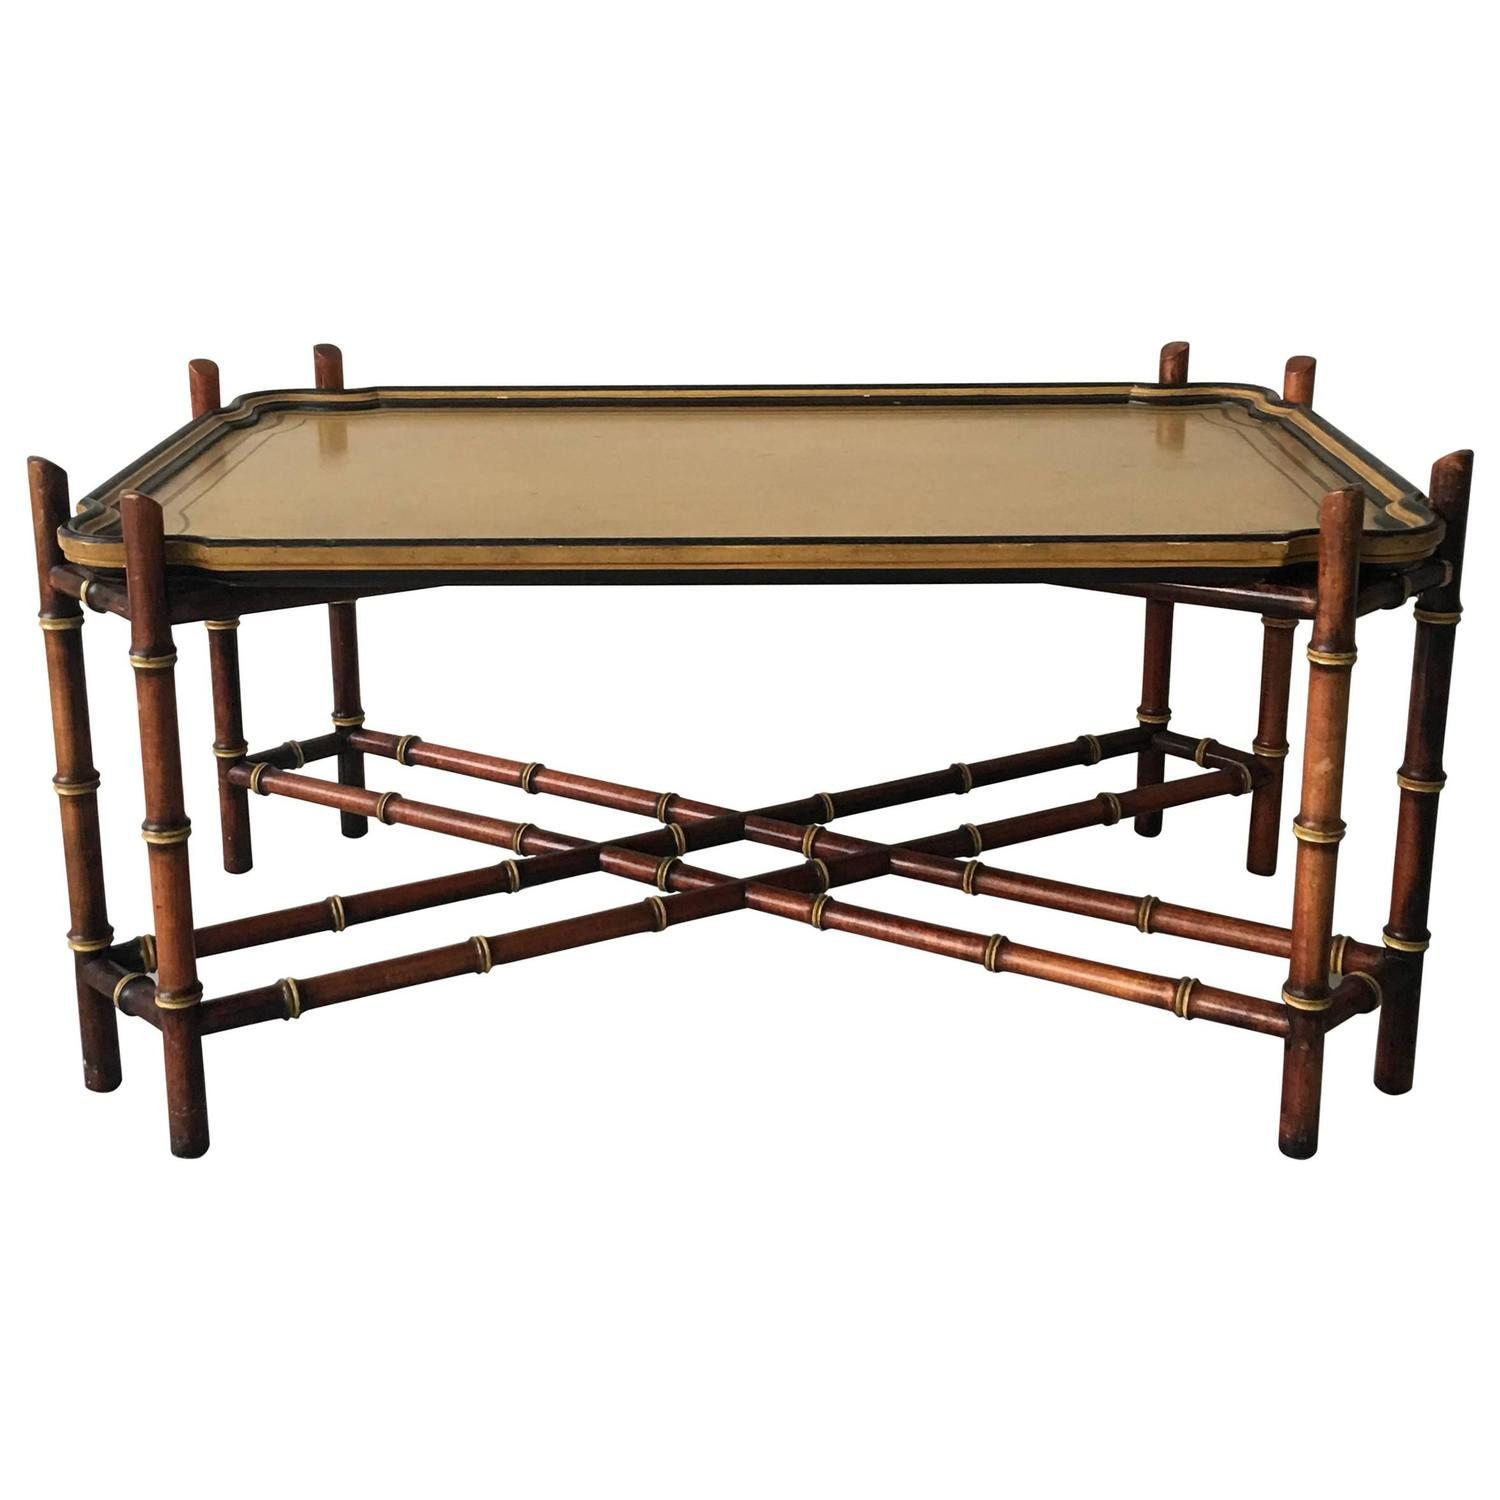 baker furniture faux bamboo tray coffee table for sale at 1stdibs